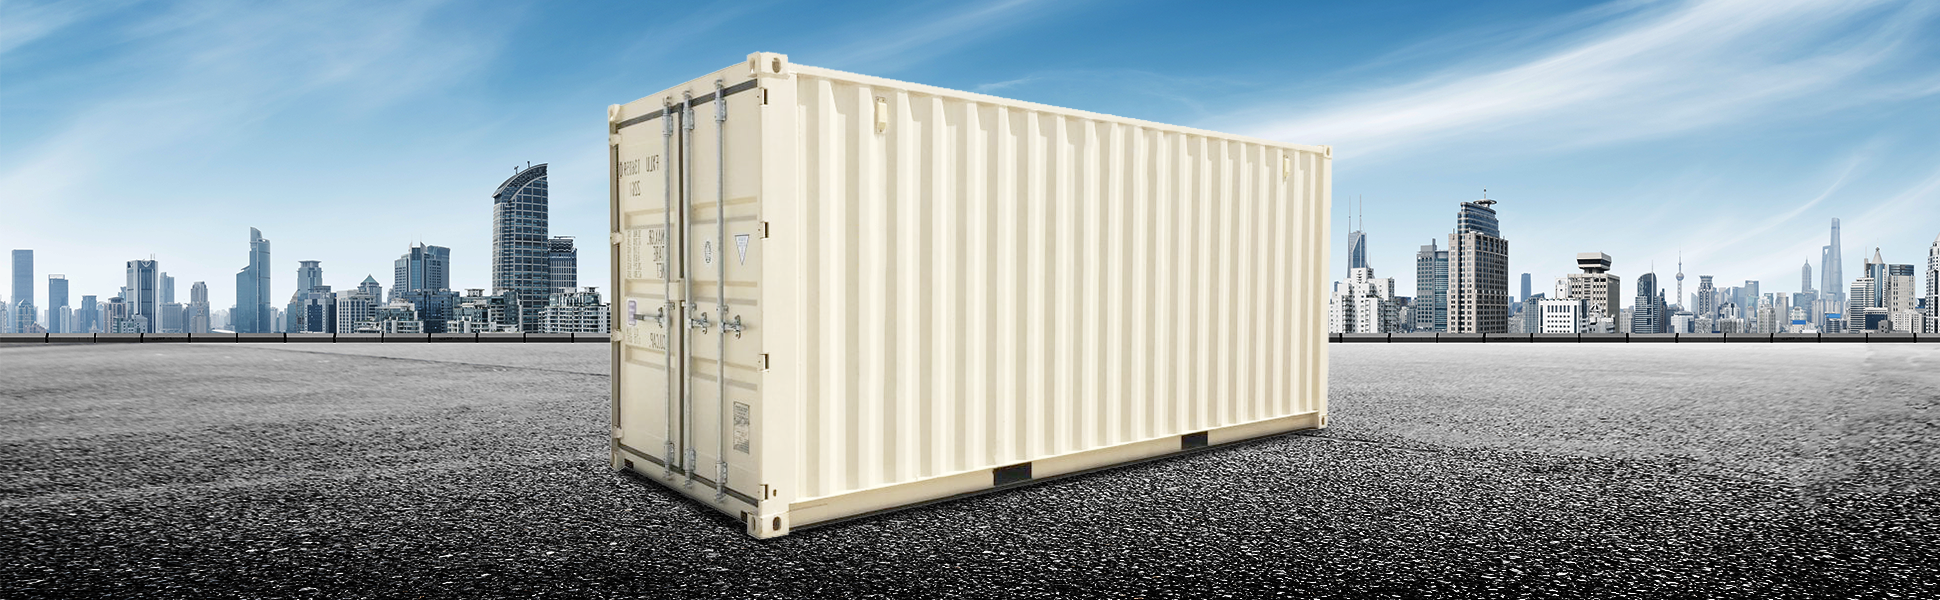 CONTAINERS, CONEX BOX, OR SHIPPING CONTAINERS